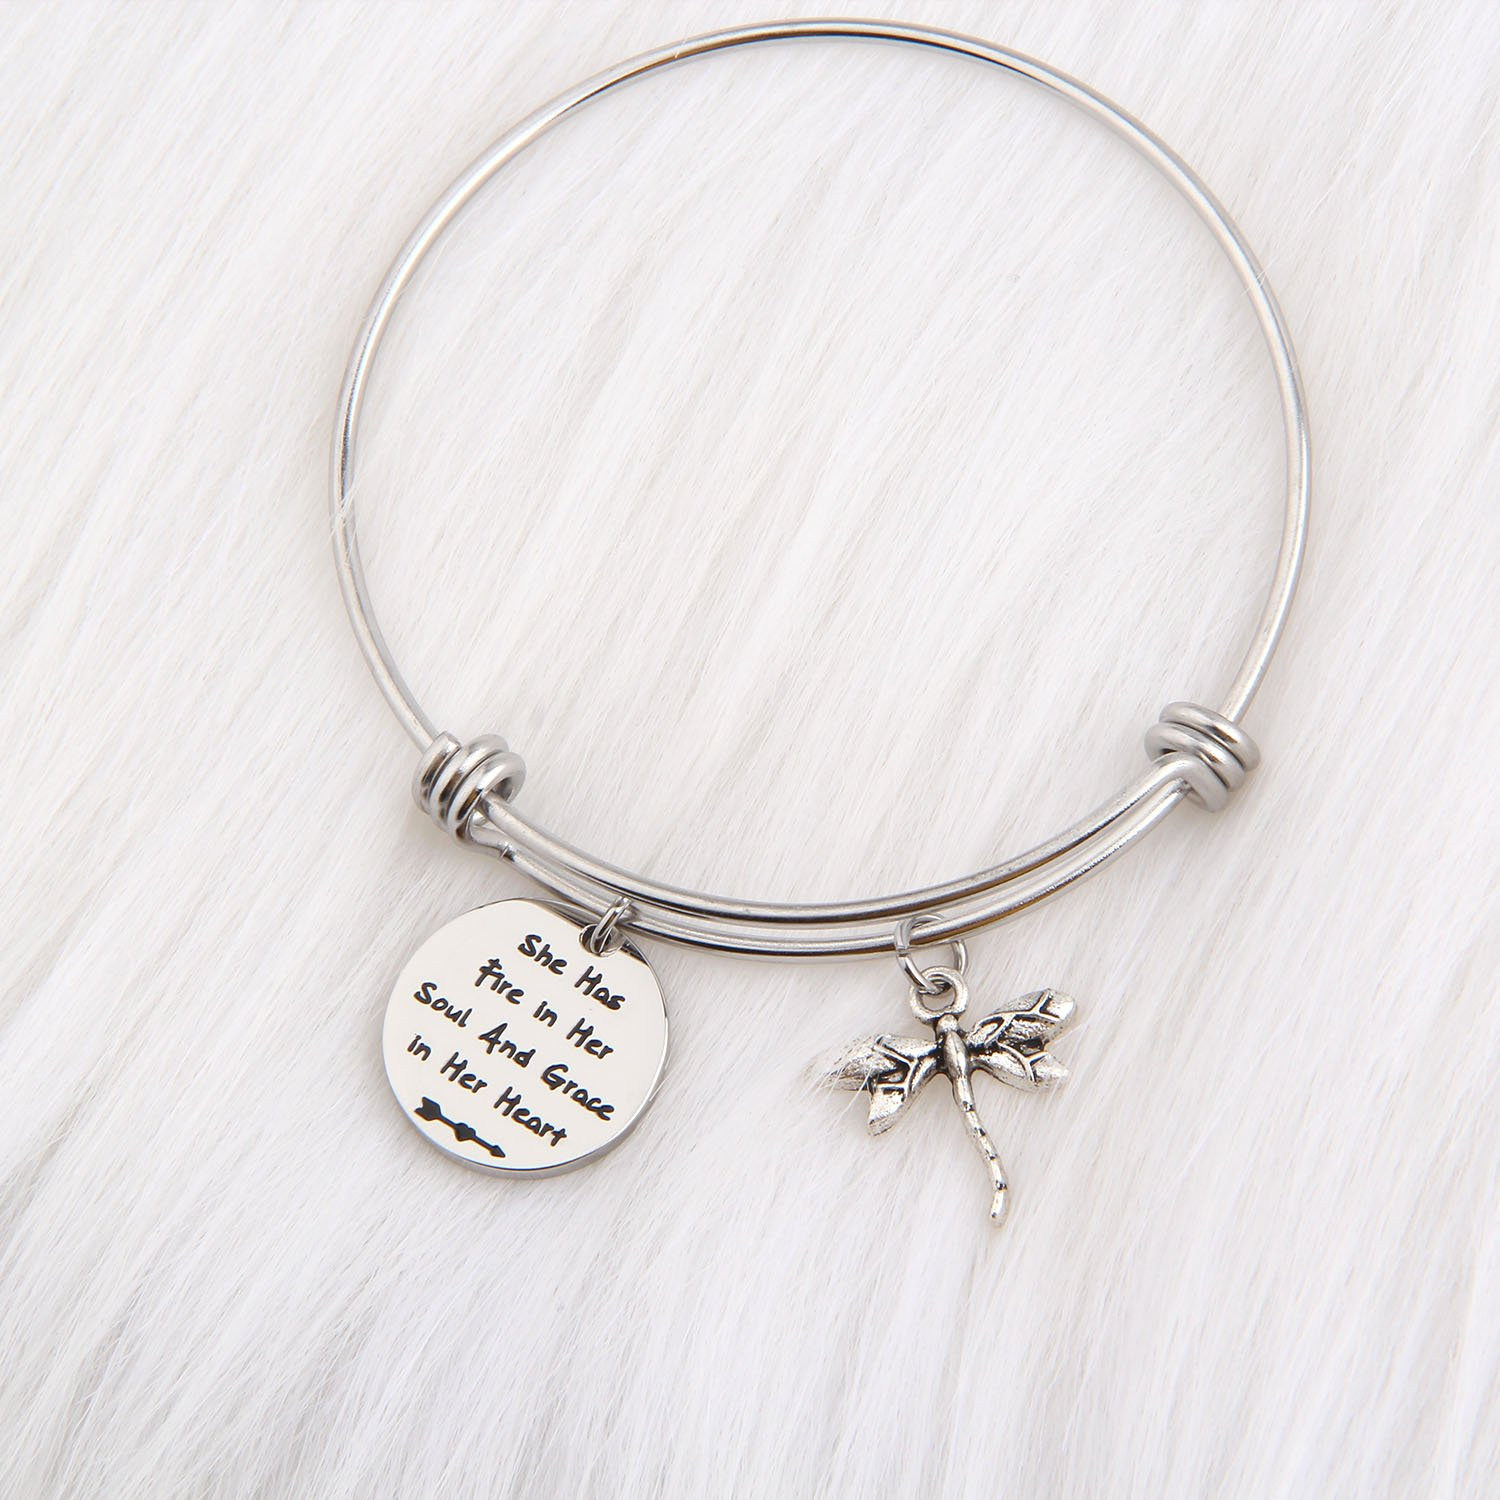 PLITI Inspirational Jewelry Graduation Gift She Has Fire in Her Soul and Grace in Her Heart Bracelet with Dragonfly Charm Motivational Faith Gift for Her (She has fire in Soul) by PLITI (Image #4)